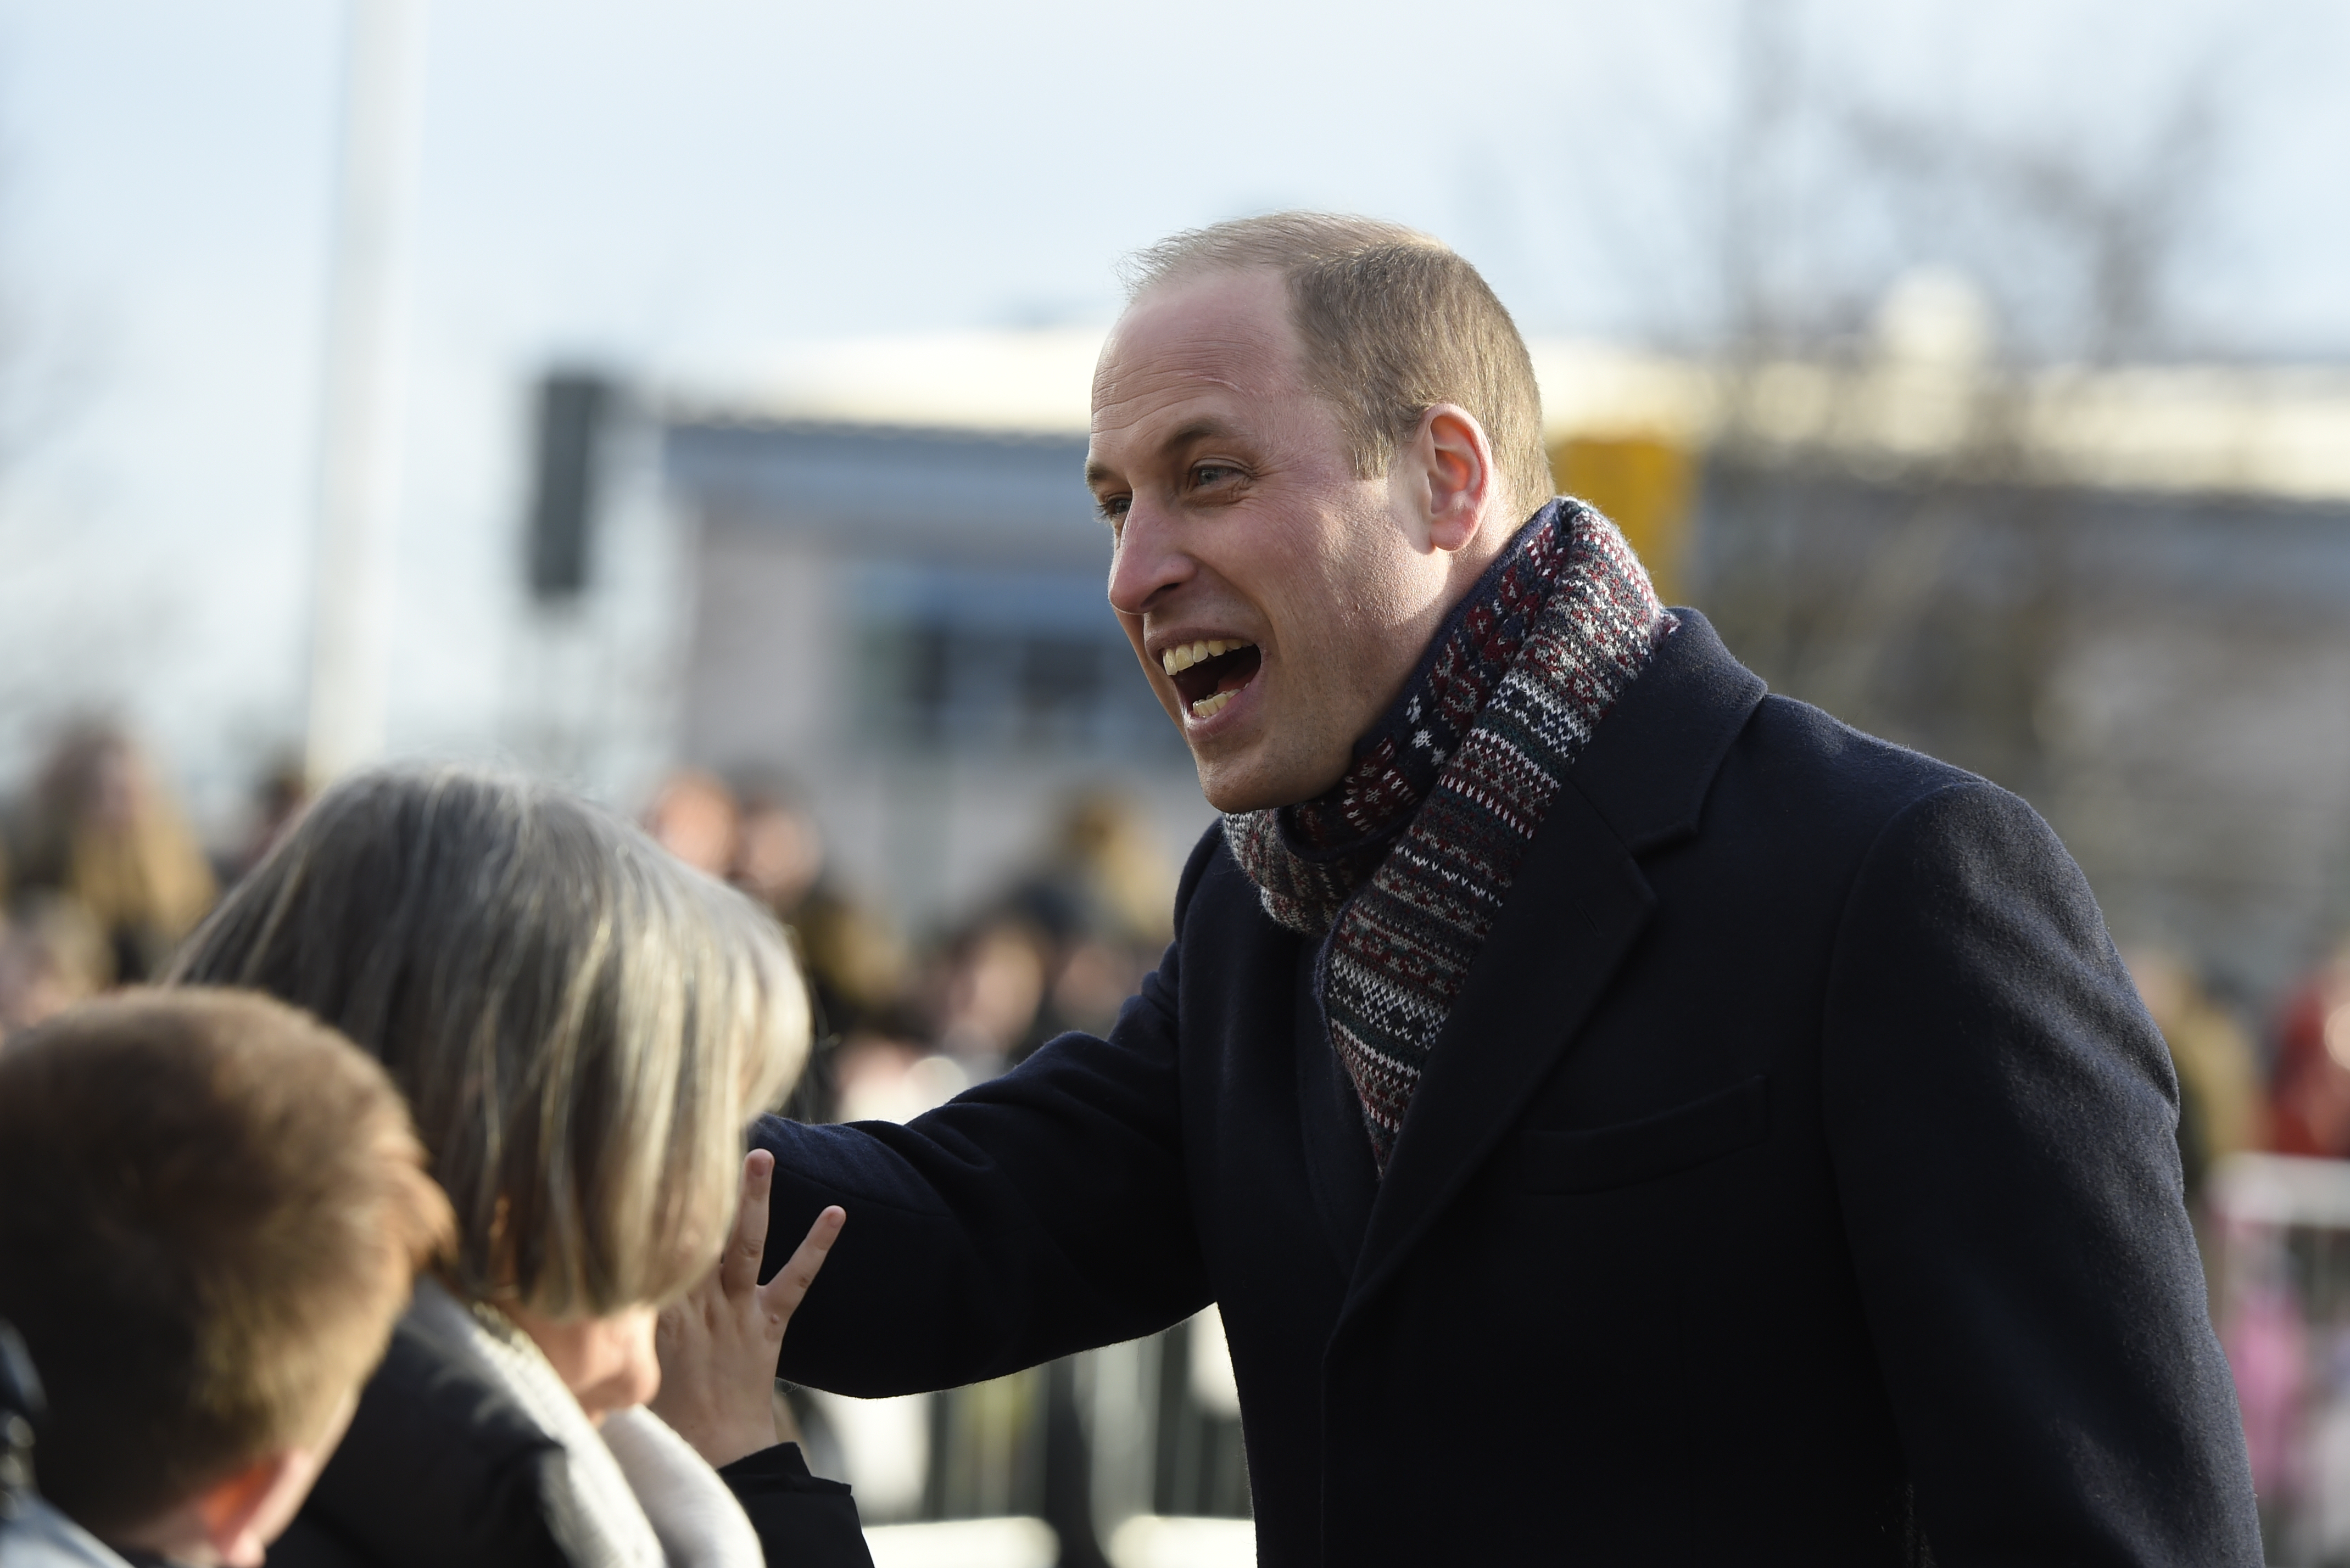 The Duke and Duchess of Cambridge at the V&A Dundee